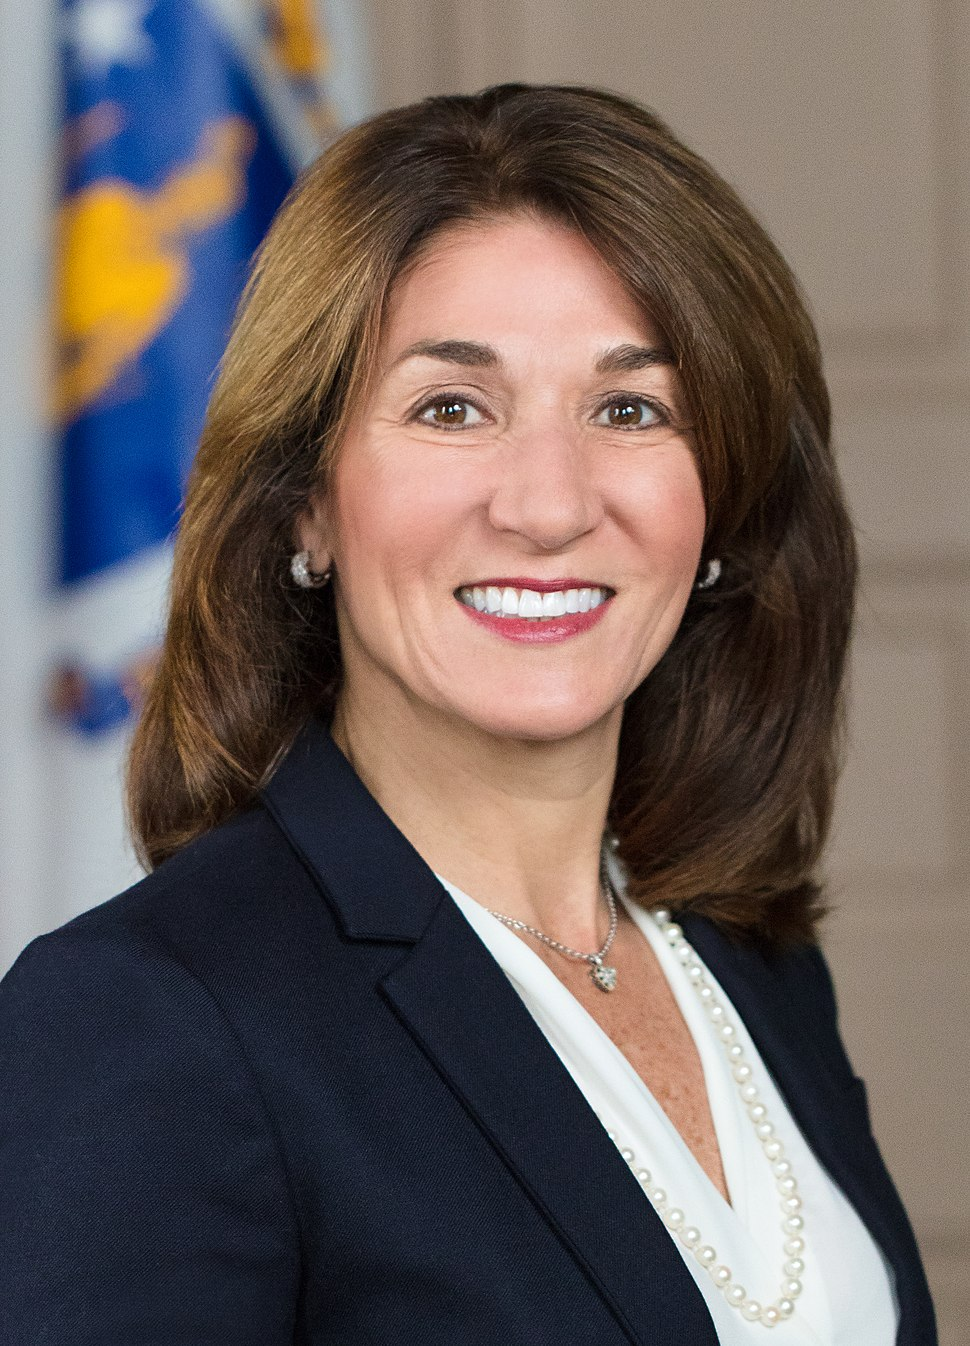 Karyn Polito official photo (cropped)